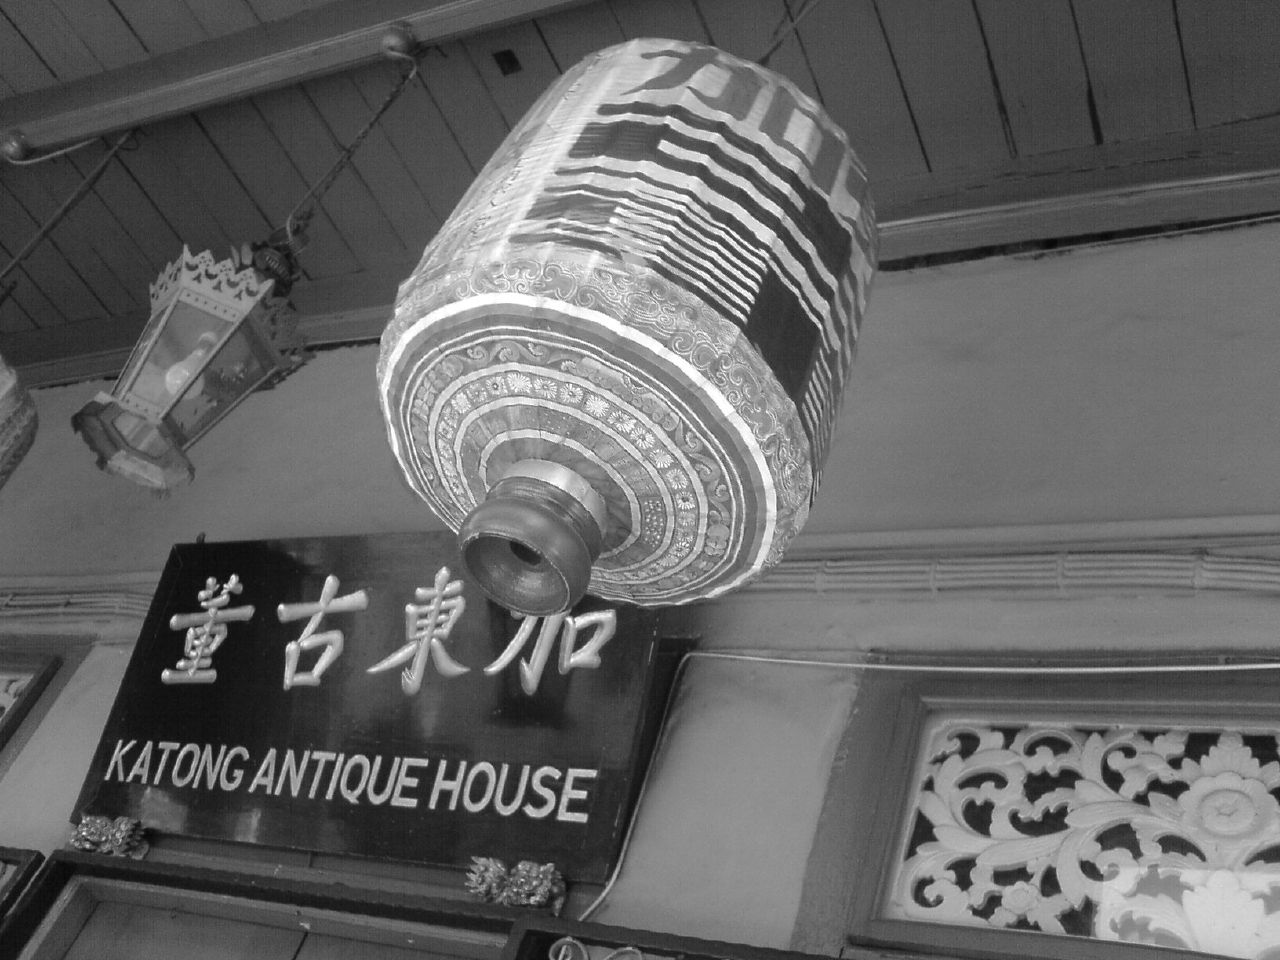 Katong Antique House